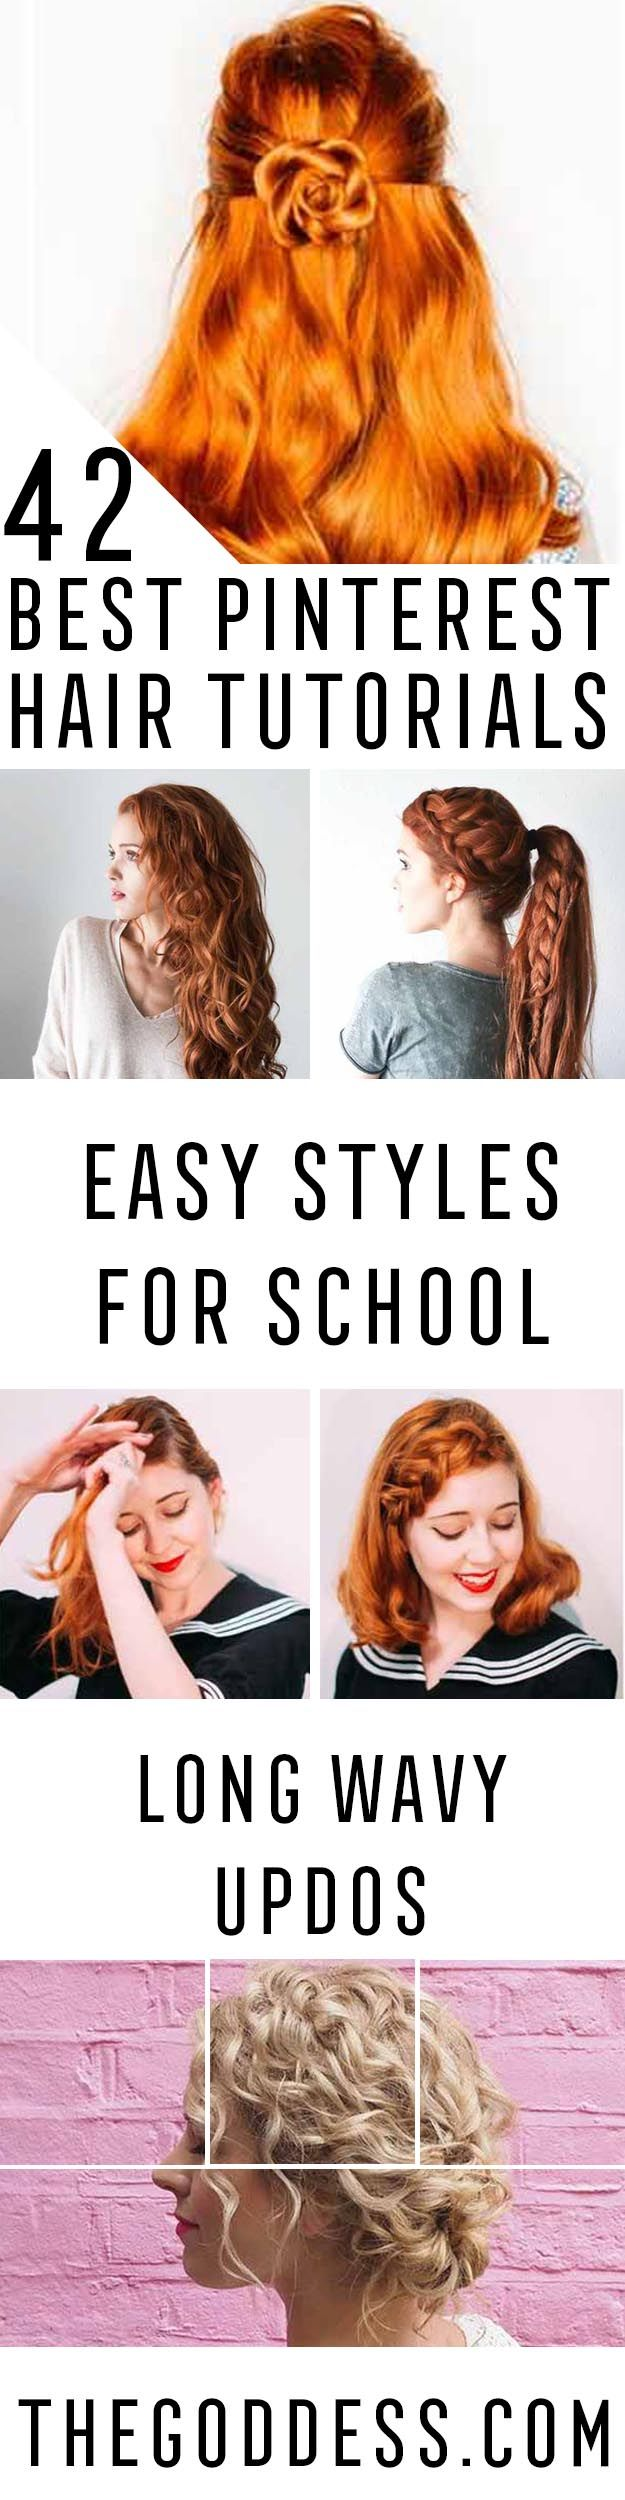 Best Pinterest Hair Tutorials - Check Out These Super Cute And Super Simple Hair...